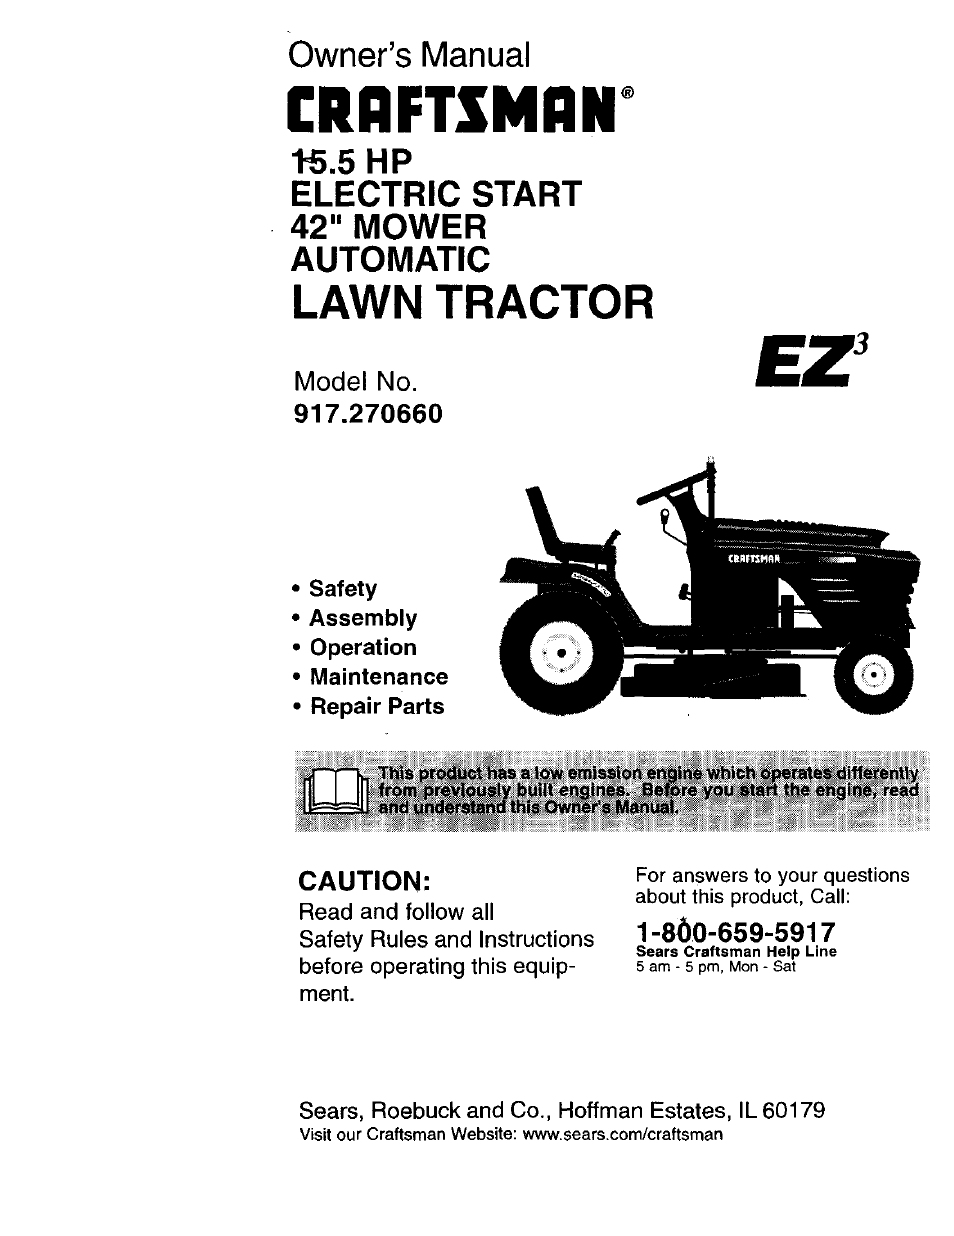 Craftsman 917 270660 User Manual